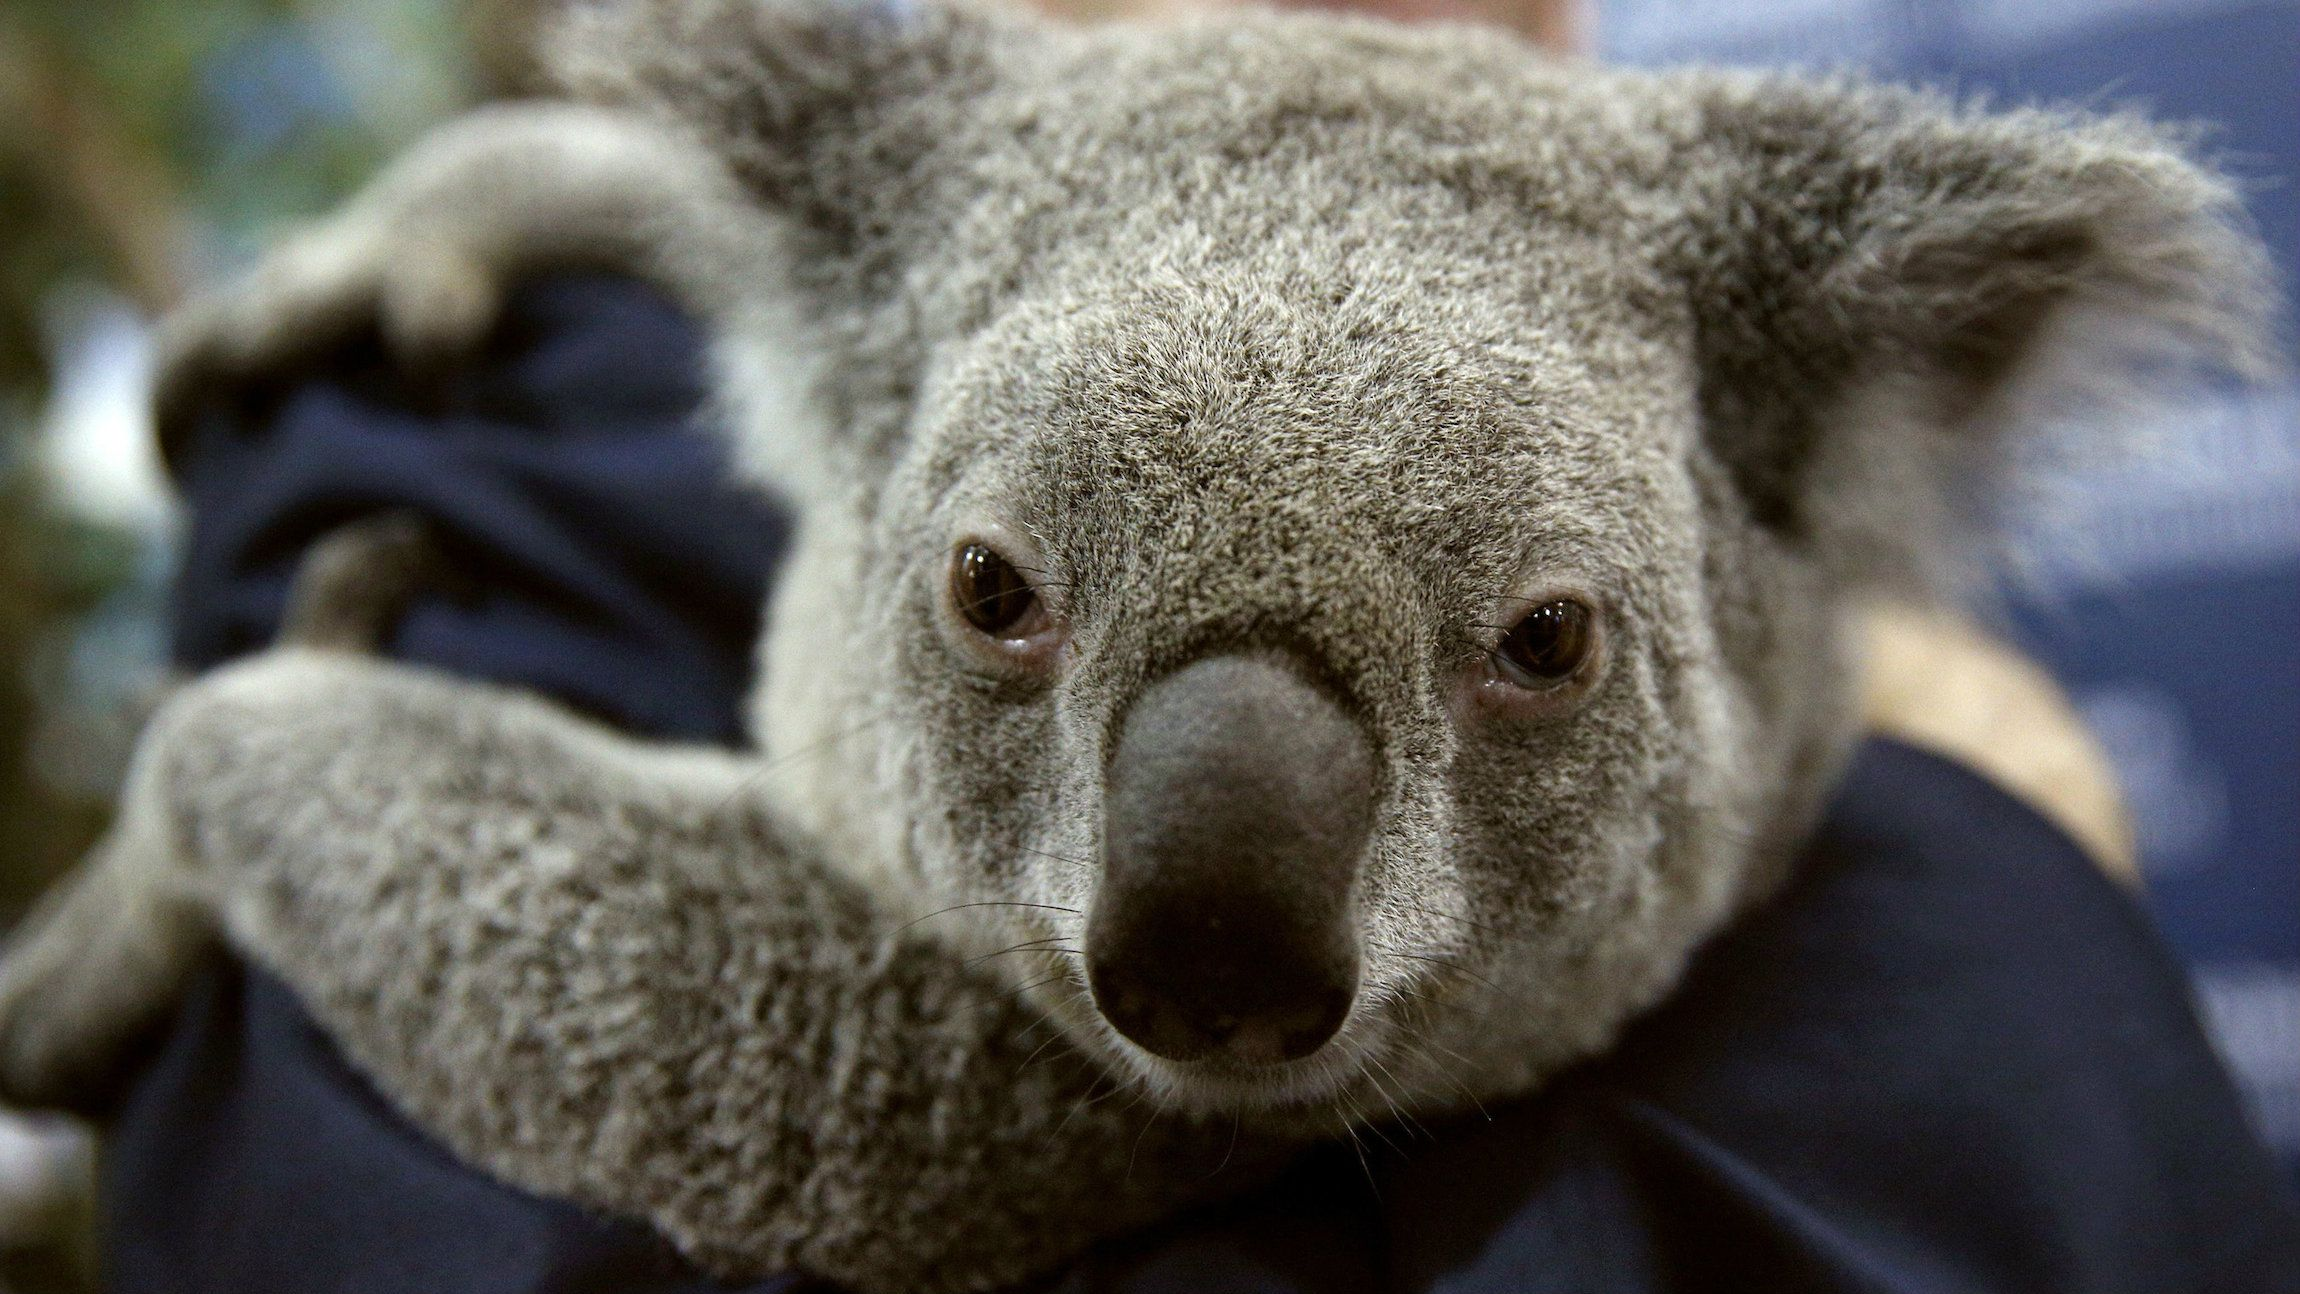 A $1.2 billion Chinese coal mine could prove fatal for the koalas of New South Wales. According to conservationists, the construction of the Shenhua's Watermark coal mine near the Liverpool Plains will destroy the marsupial's habitat and affect their long-term survival.